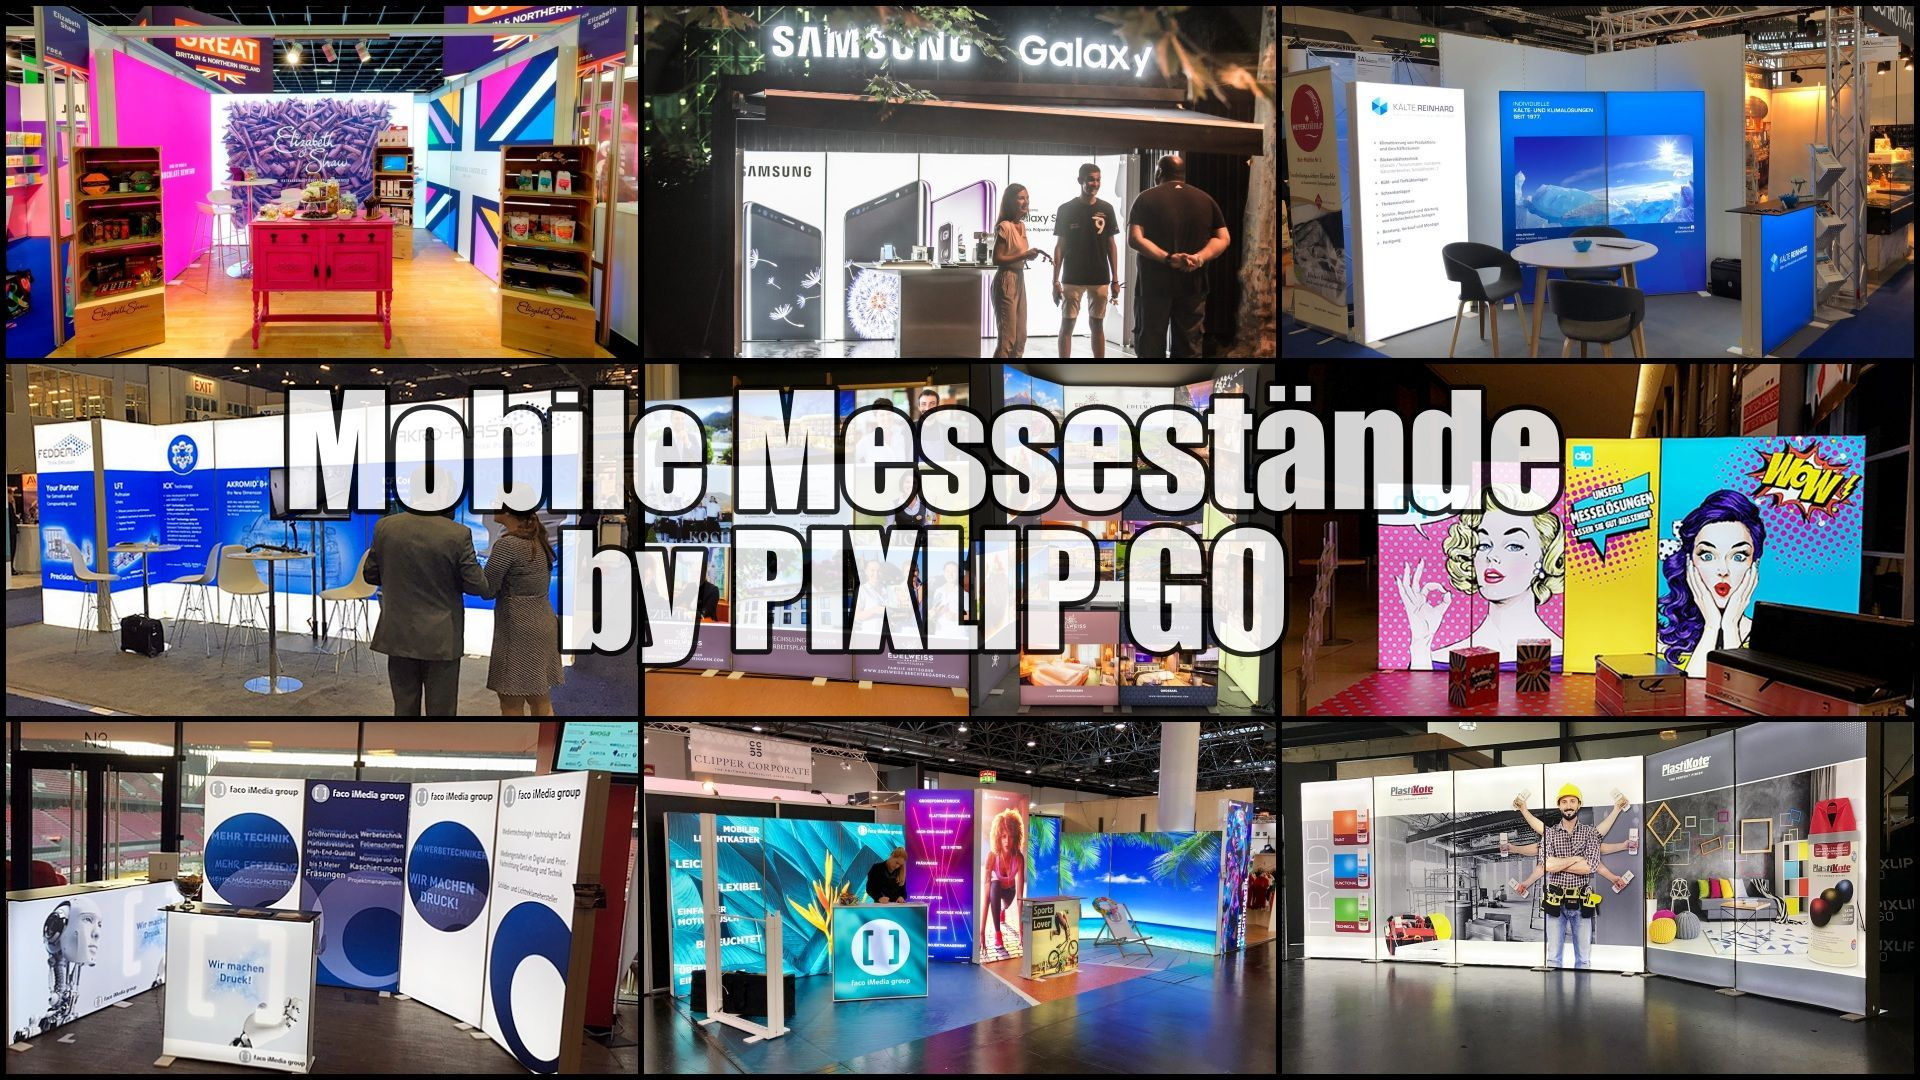 Mobile Messestande Leichtgewicht Mit Led Technik Die Mobilen Messestande By Pixlip Go Vereinen Standarchitektur Kom Led Technik Mobiler Messestand Messewand